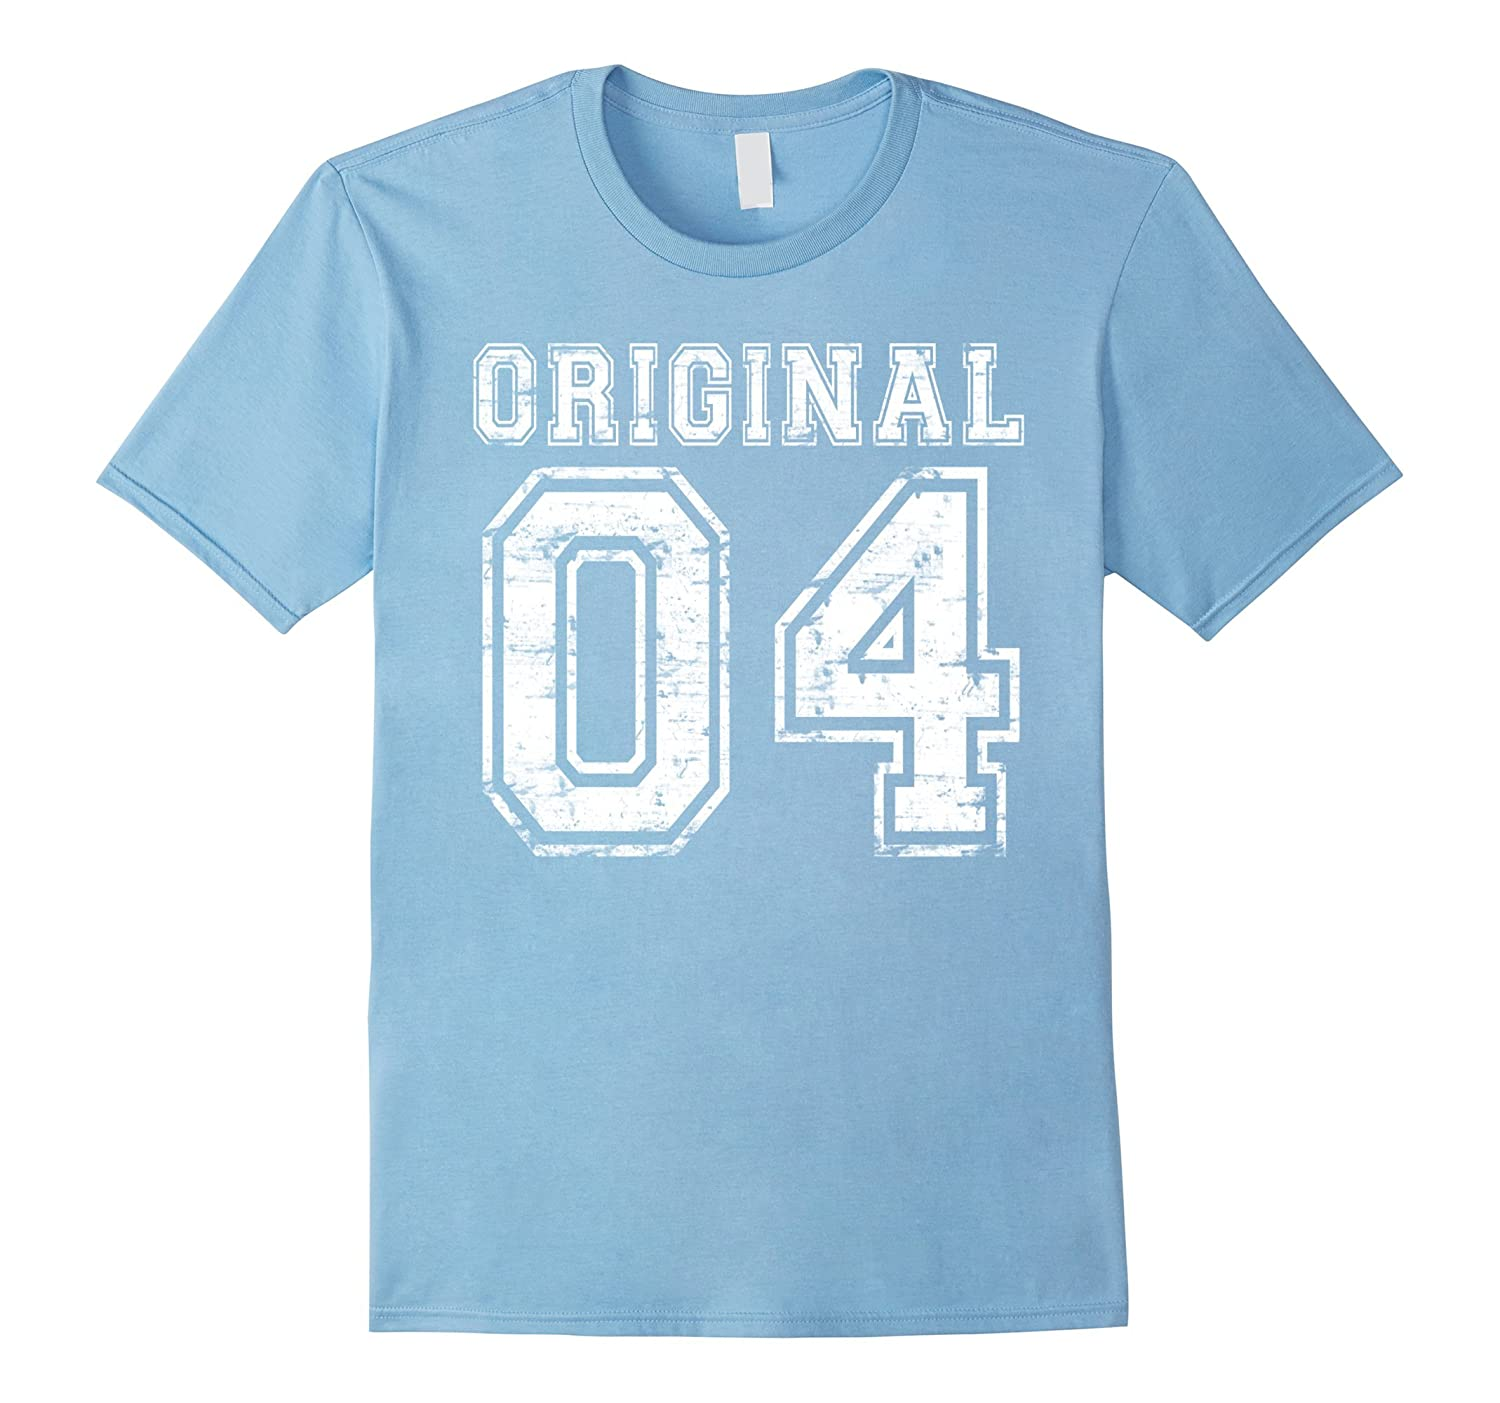 13th Birthday Shirt For Boys Or Girls Party Gifts PL